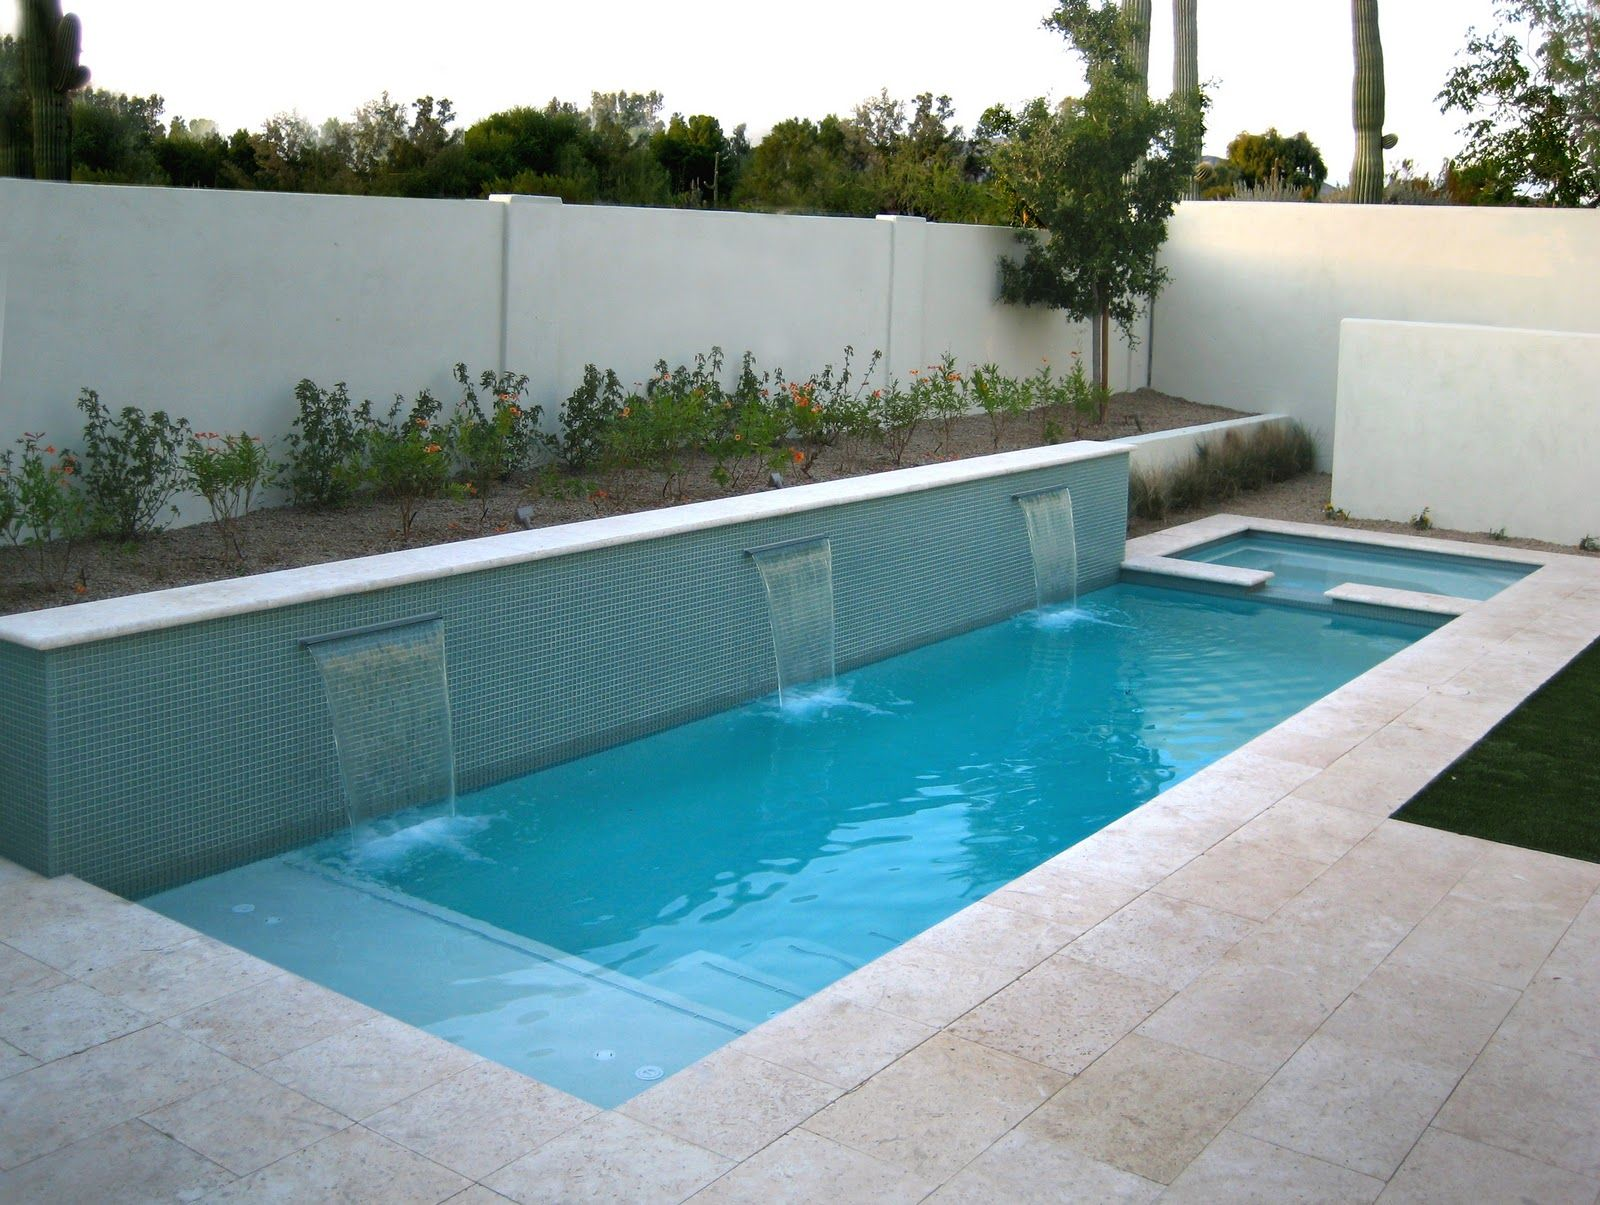 Swimming Pools In Small Spaces Small Pool Design Swimming Pools